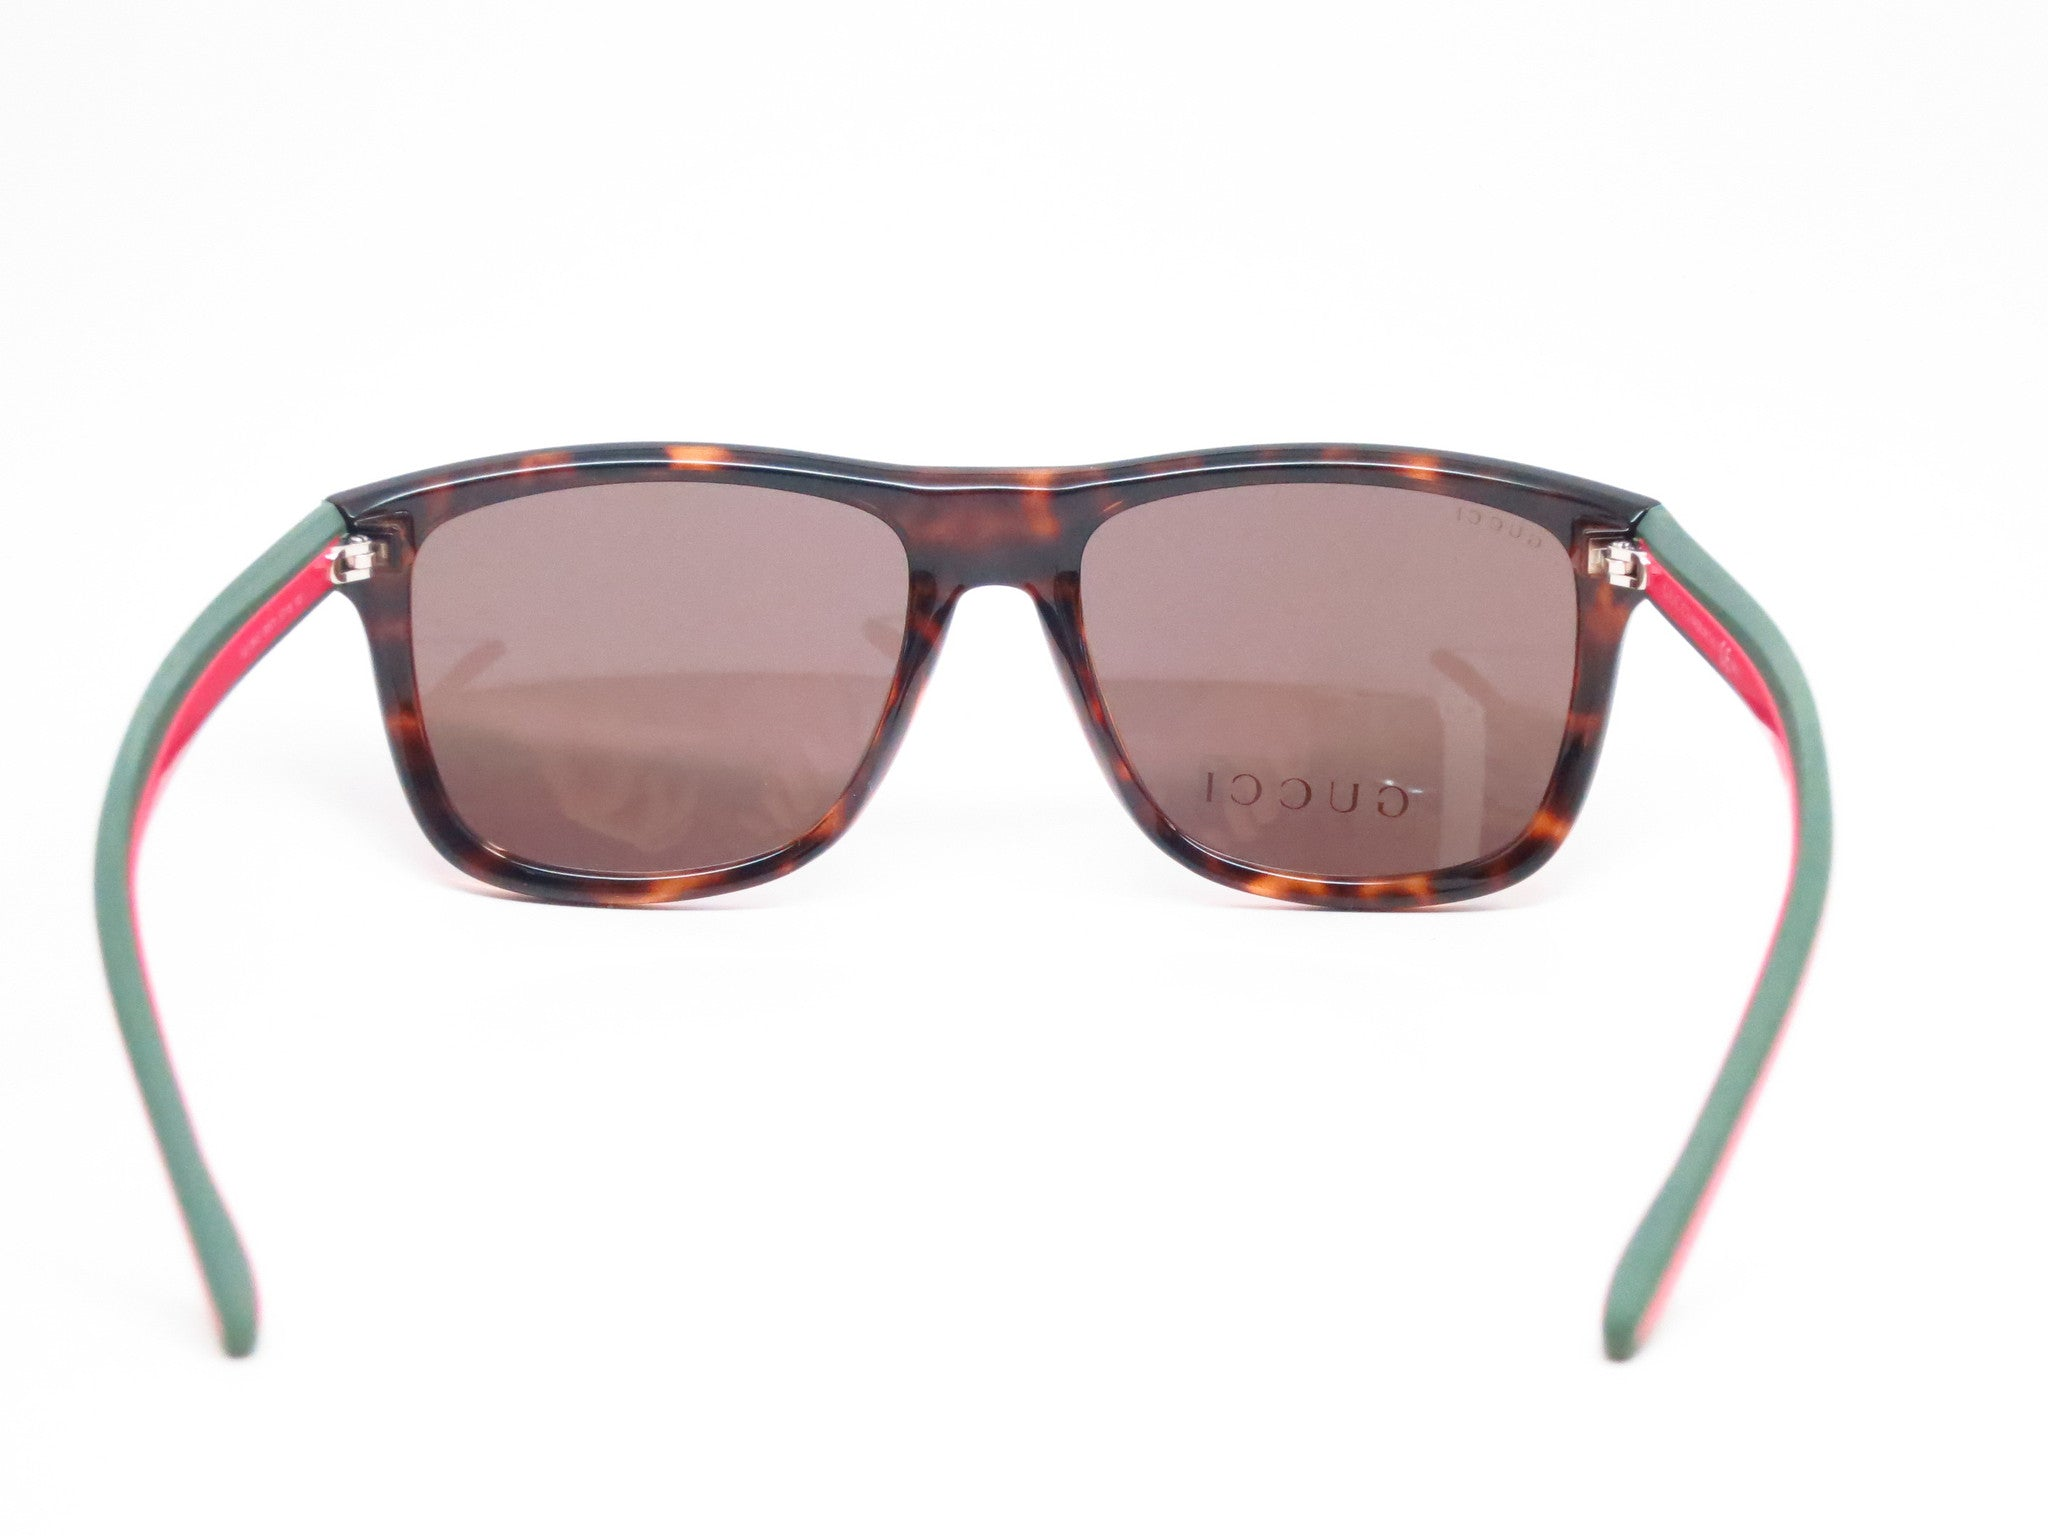 54f33f2b9eee7 ... Gucci GG 1118 M15 70 Havana Green Red Sunglasses - Eye Heart Shades -  Gucci ...